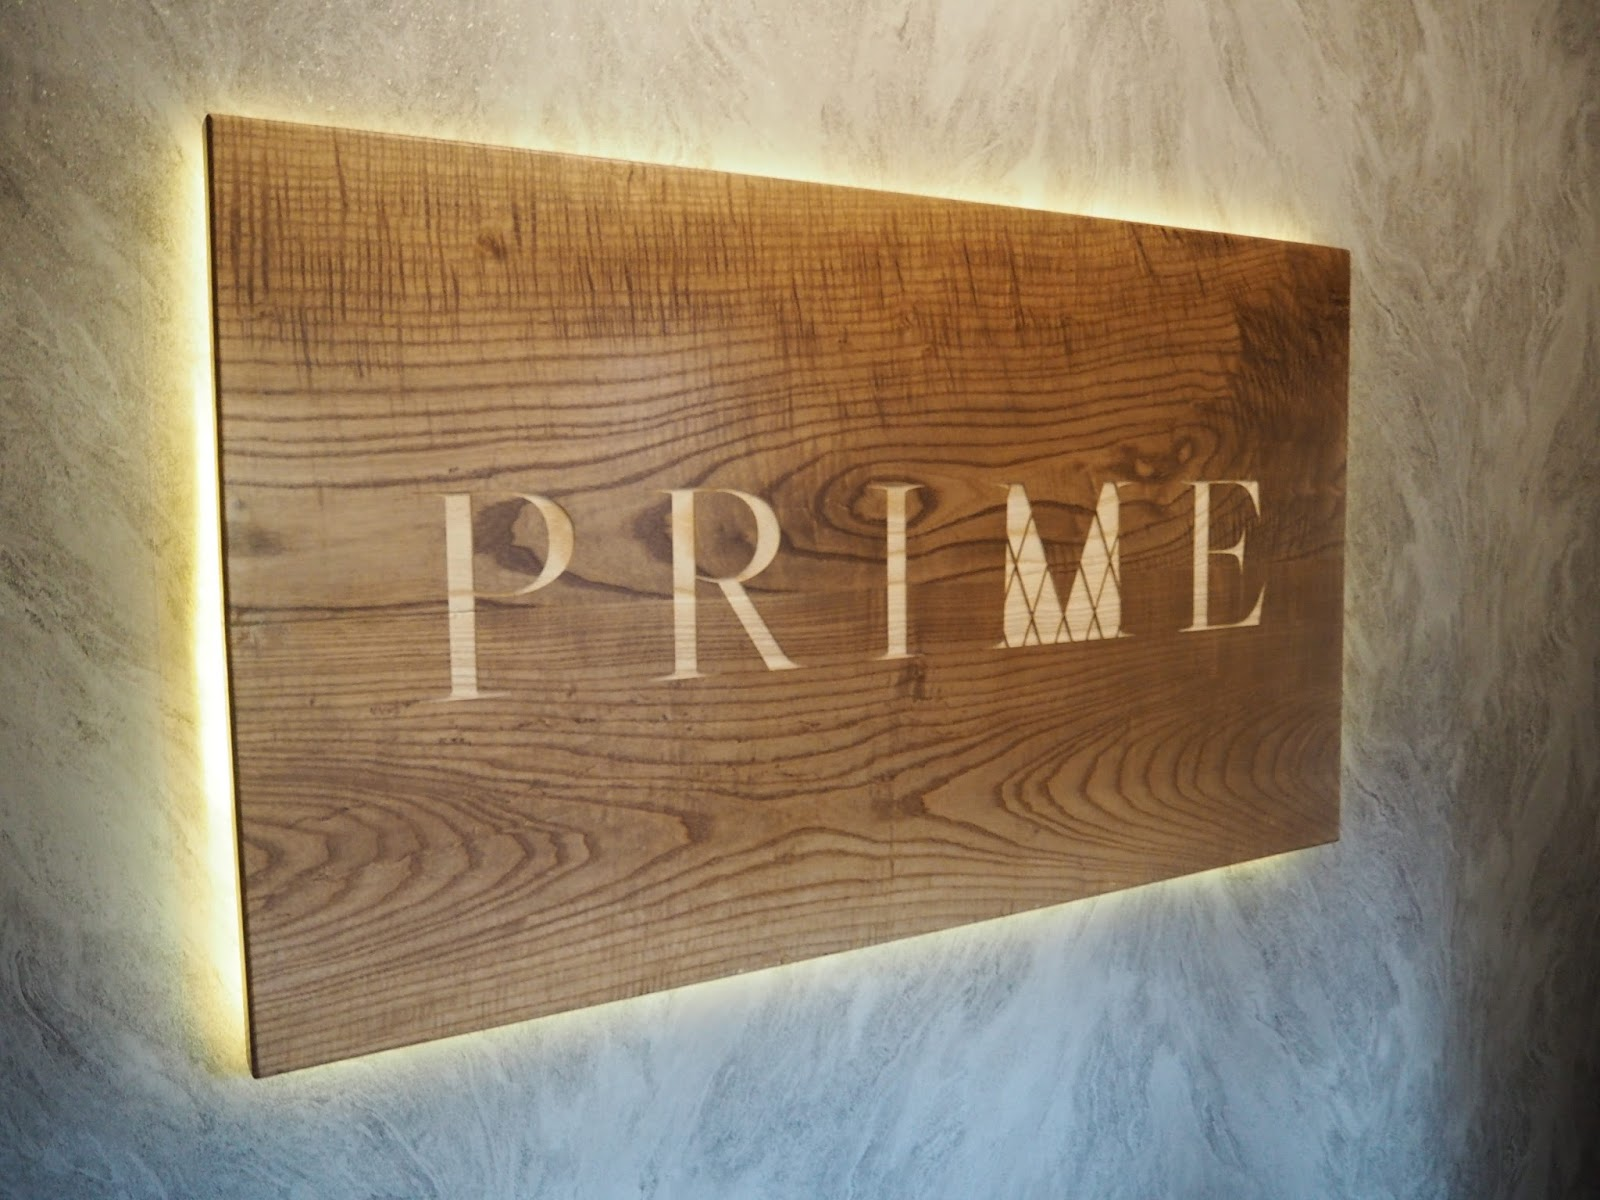 Stirk House Gisburn, Pendle Witch Tours, Prime Restaurant